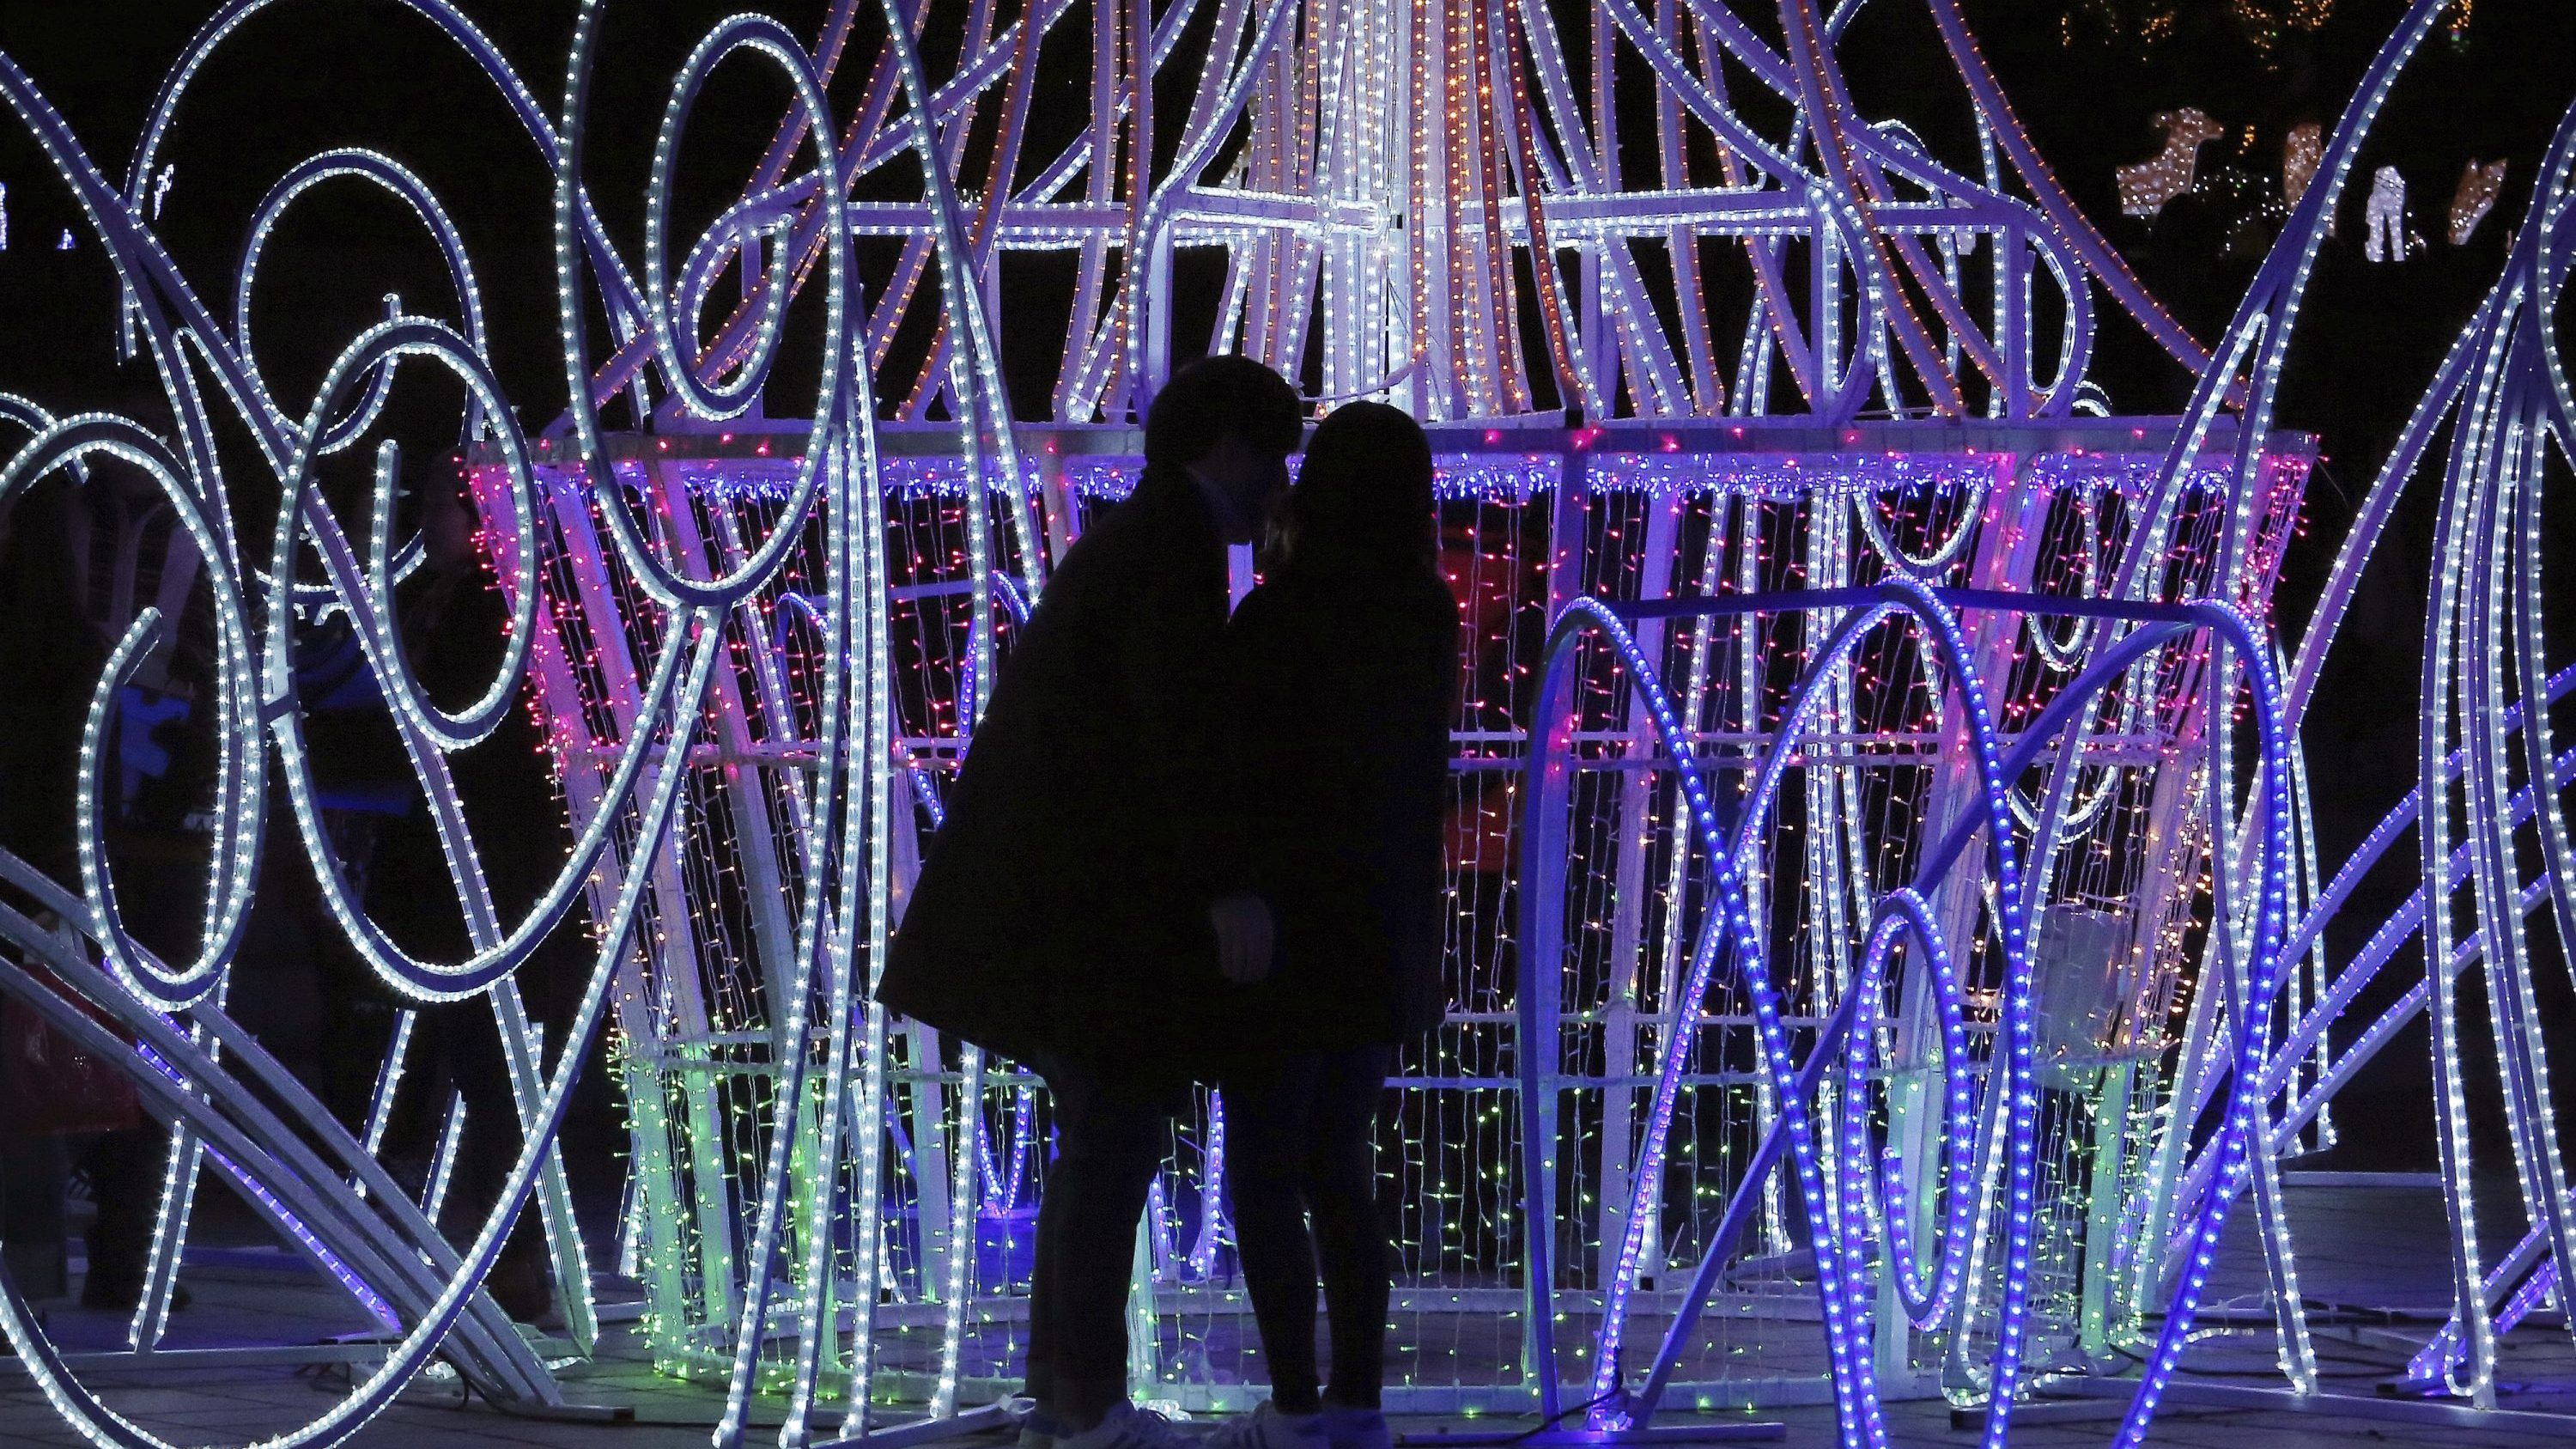 A kissing couple is silhouetted against illuminations celebrating the Christmas and New Year holiday season at Ilsan Lake Park in Goyang, South Korea, Sunday, Dec. 25, 2016.